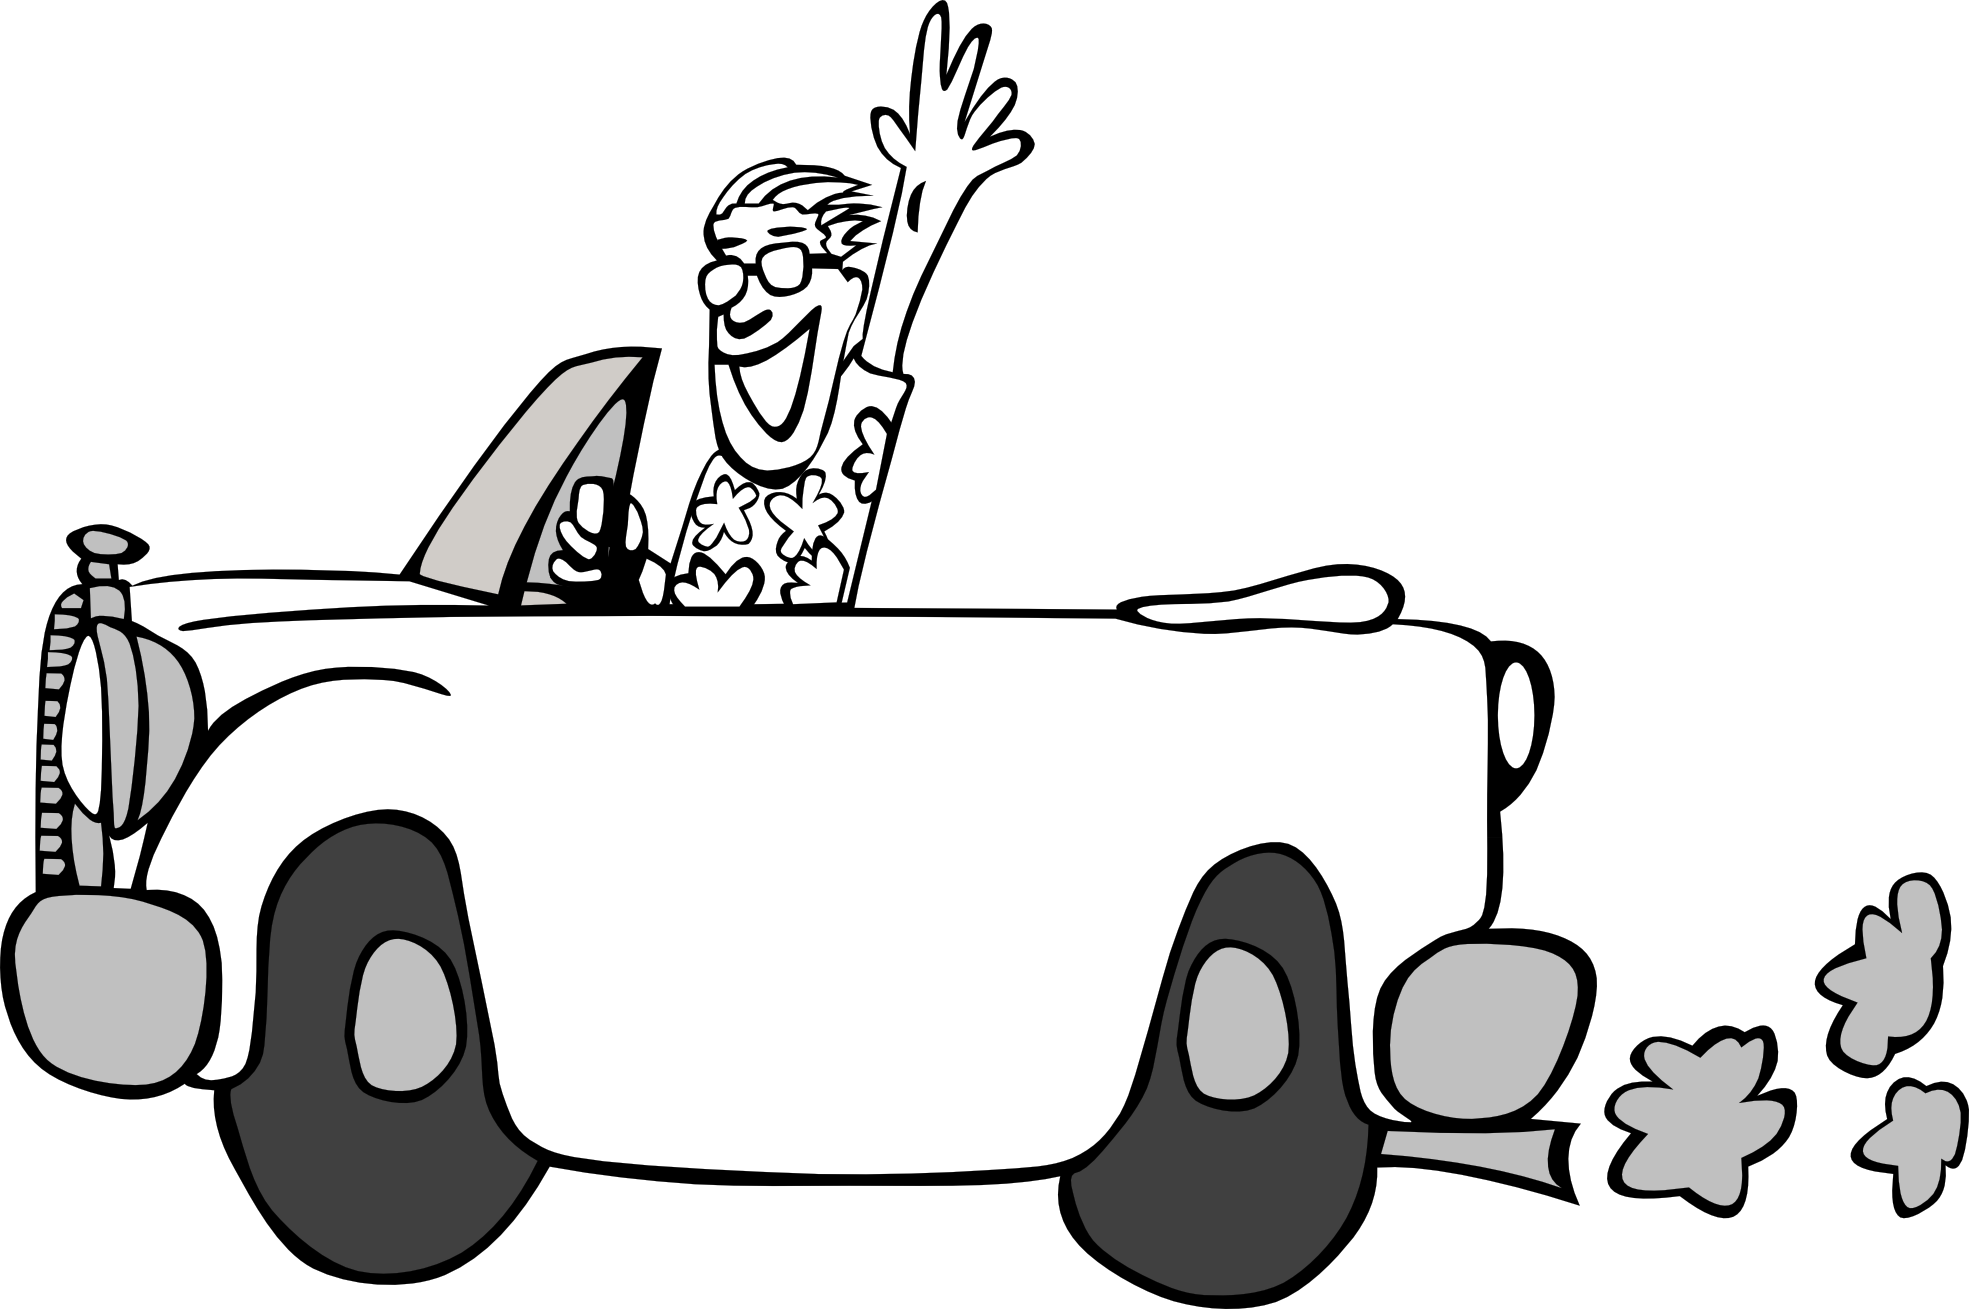 Man working under car black and white clipart